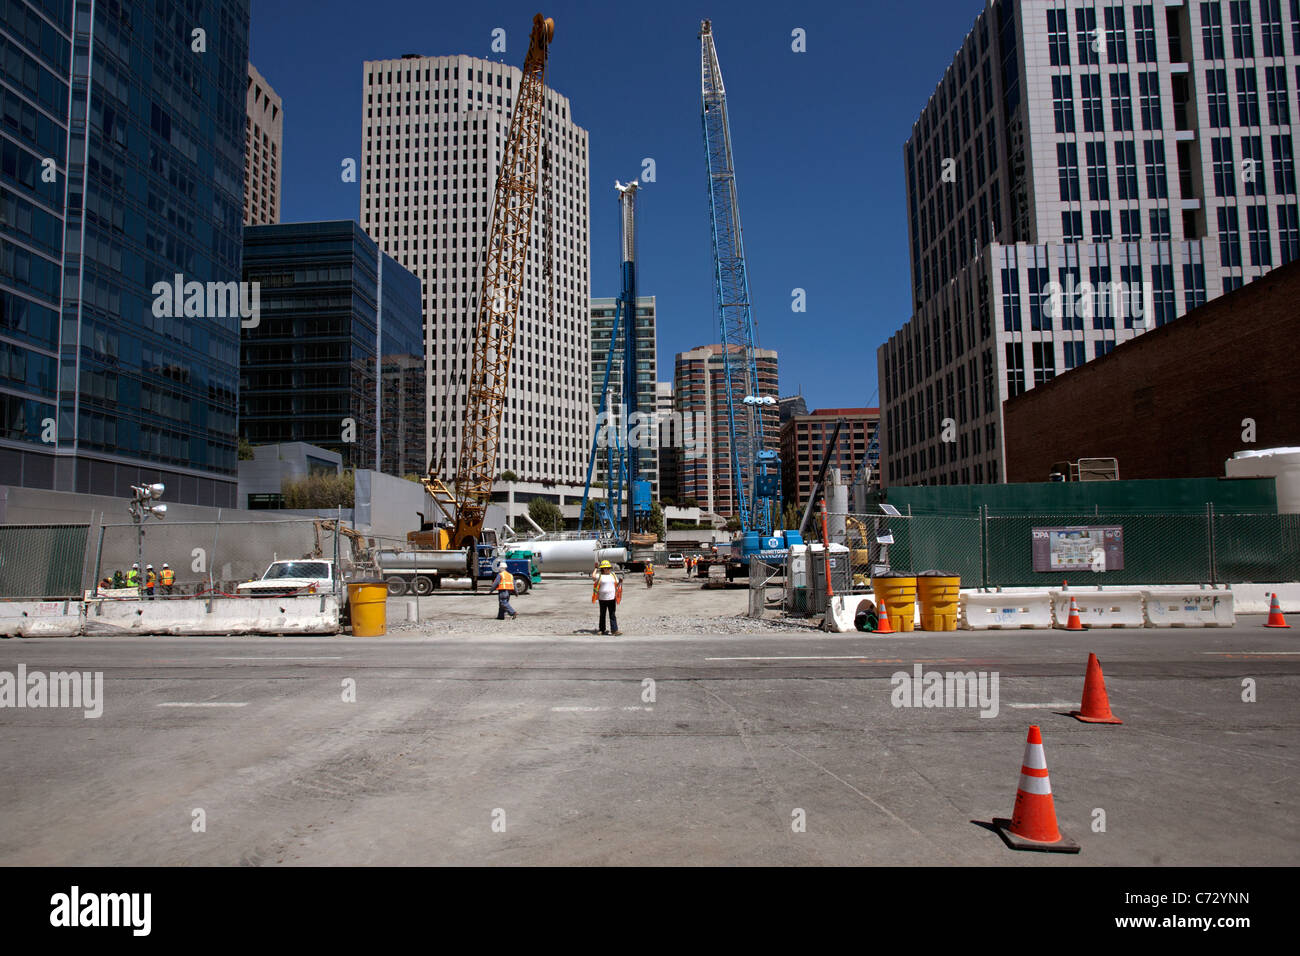 new transport terminal being built in san francisco - Stock Image